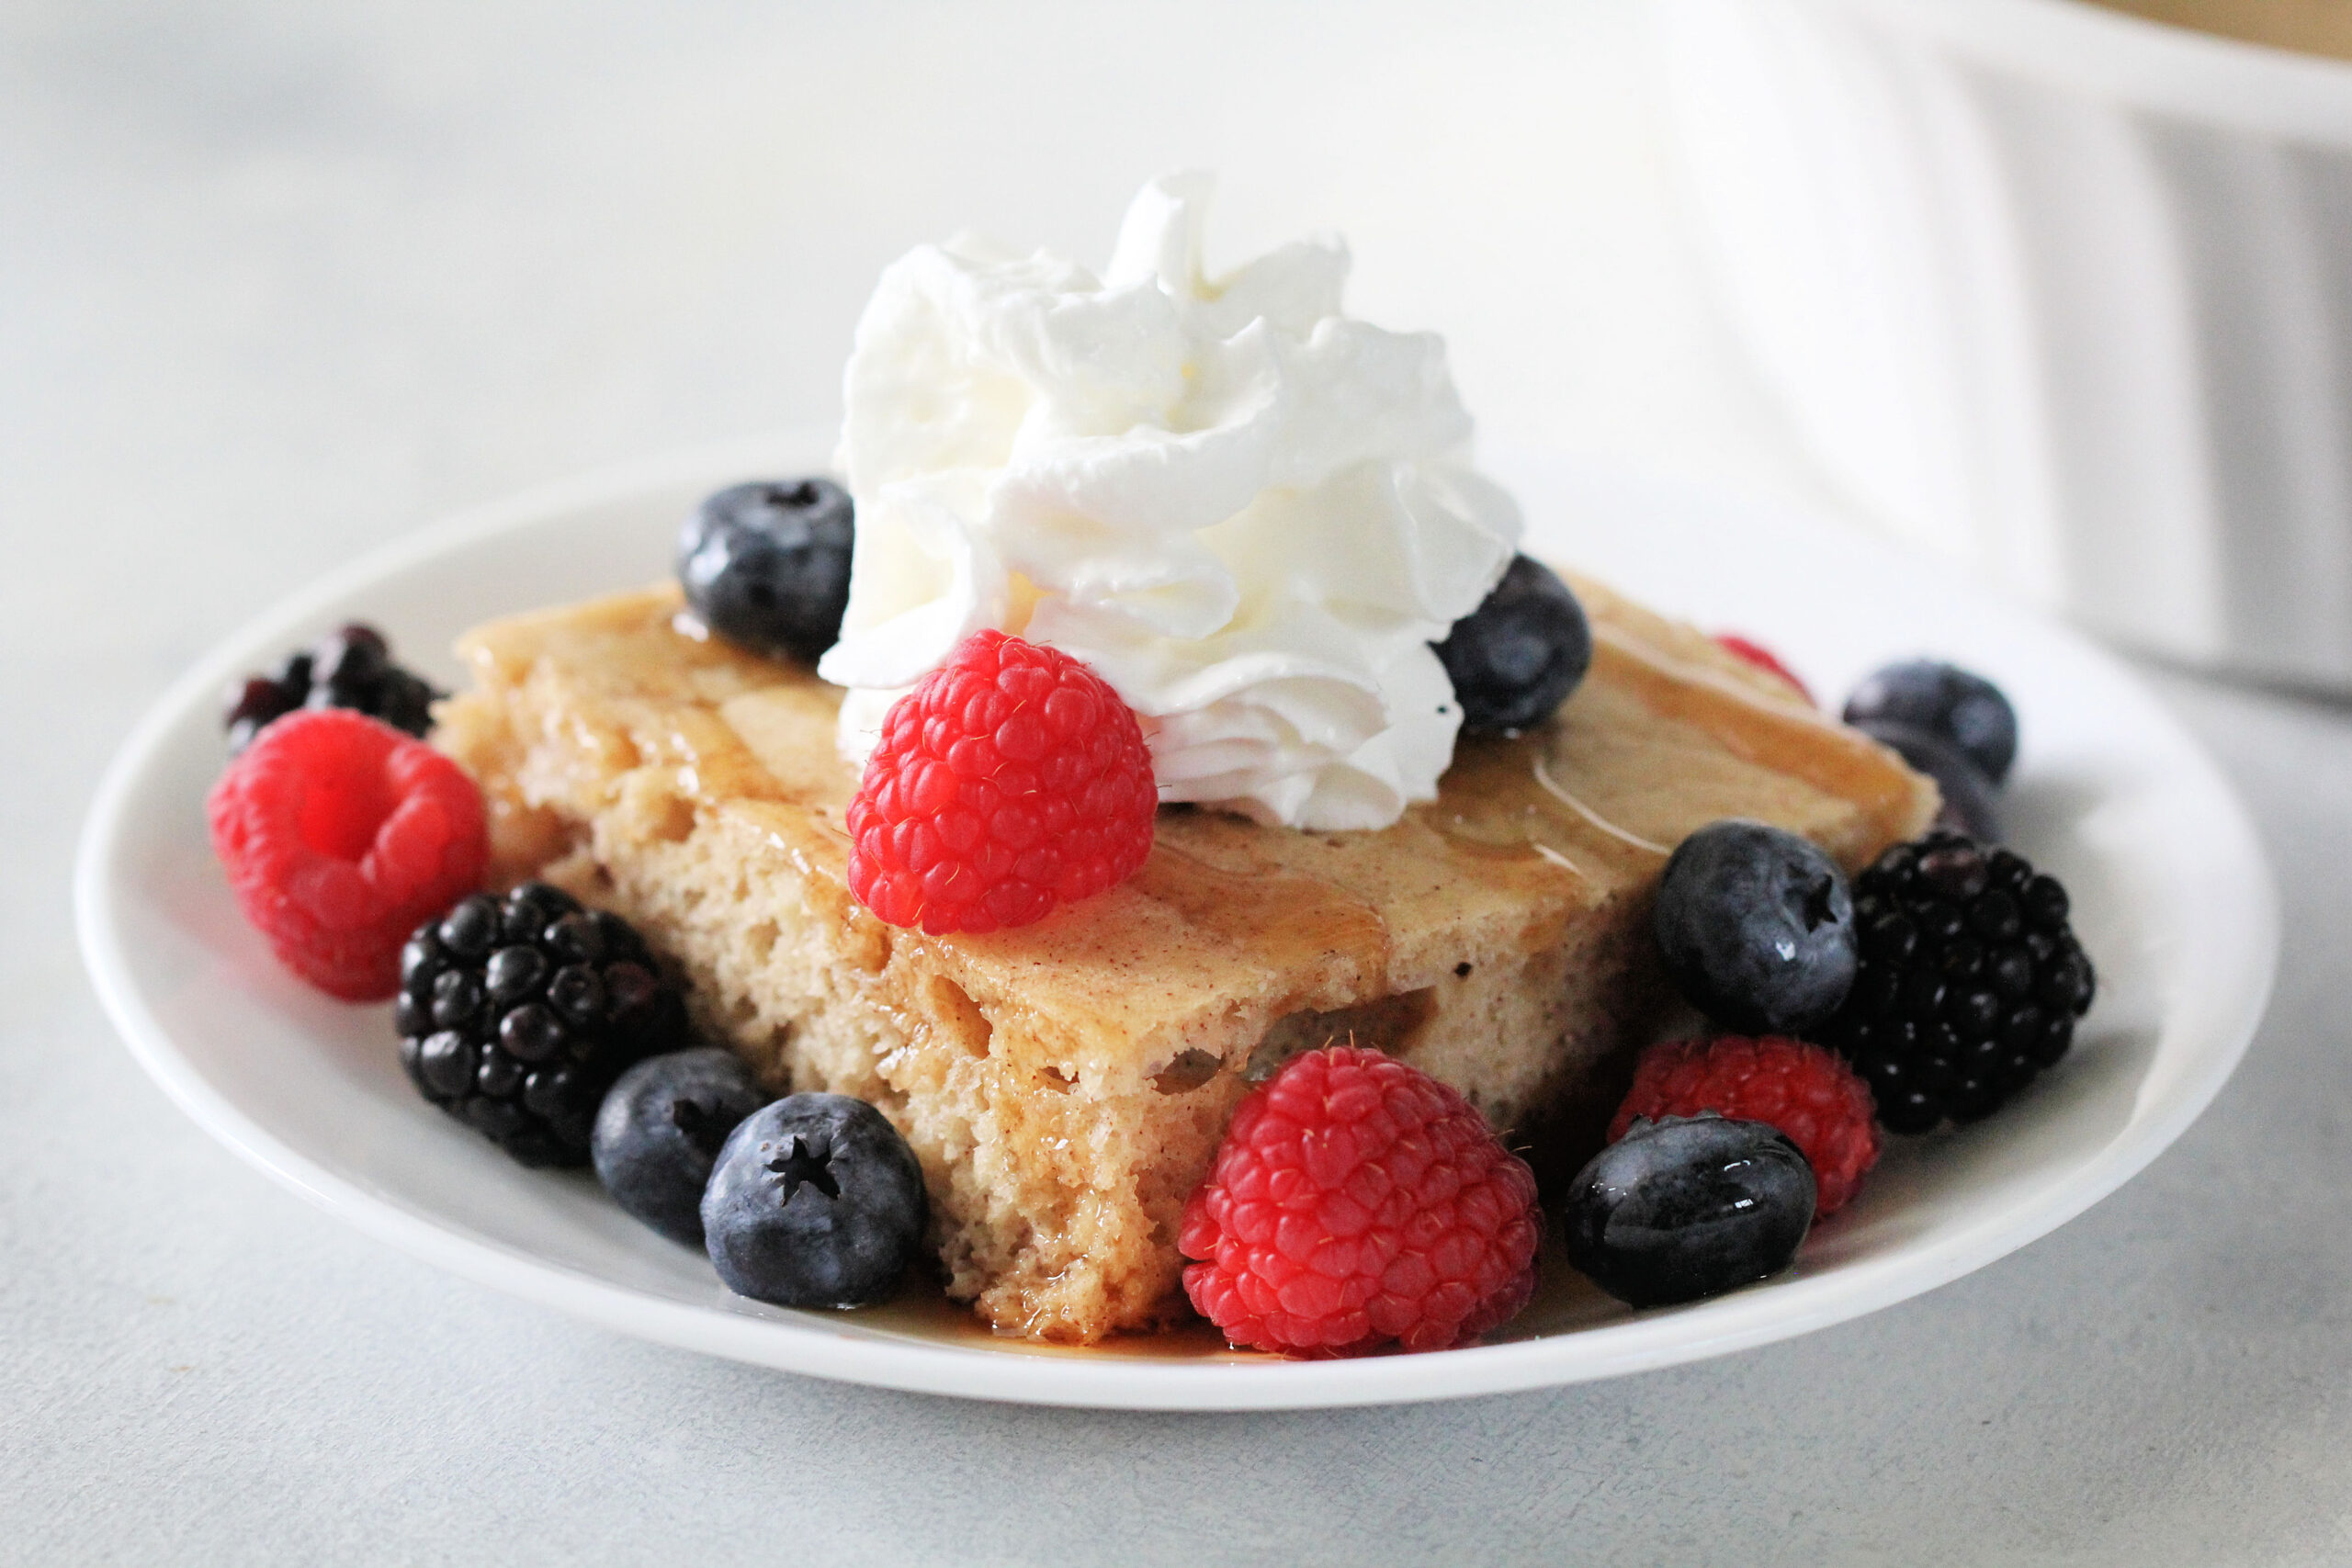 Baked Pancake on white dish with berries and whip cream